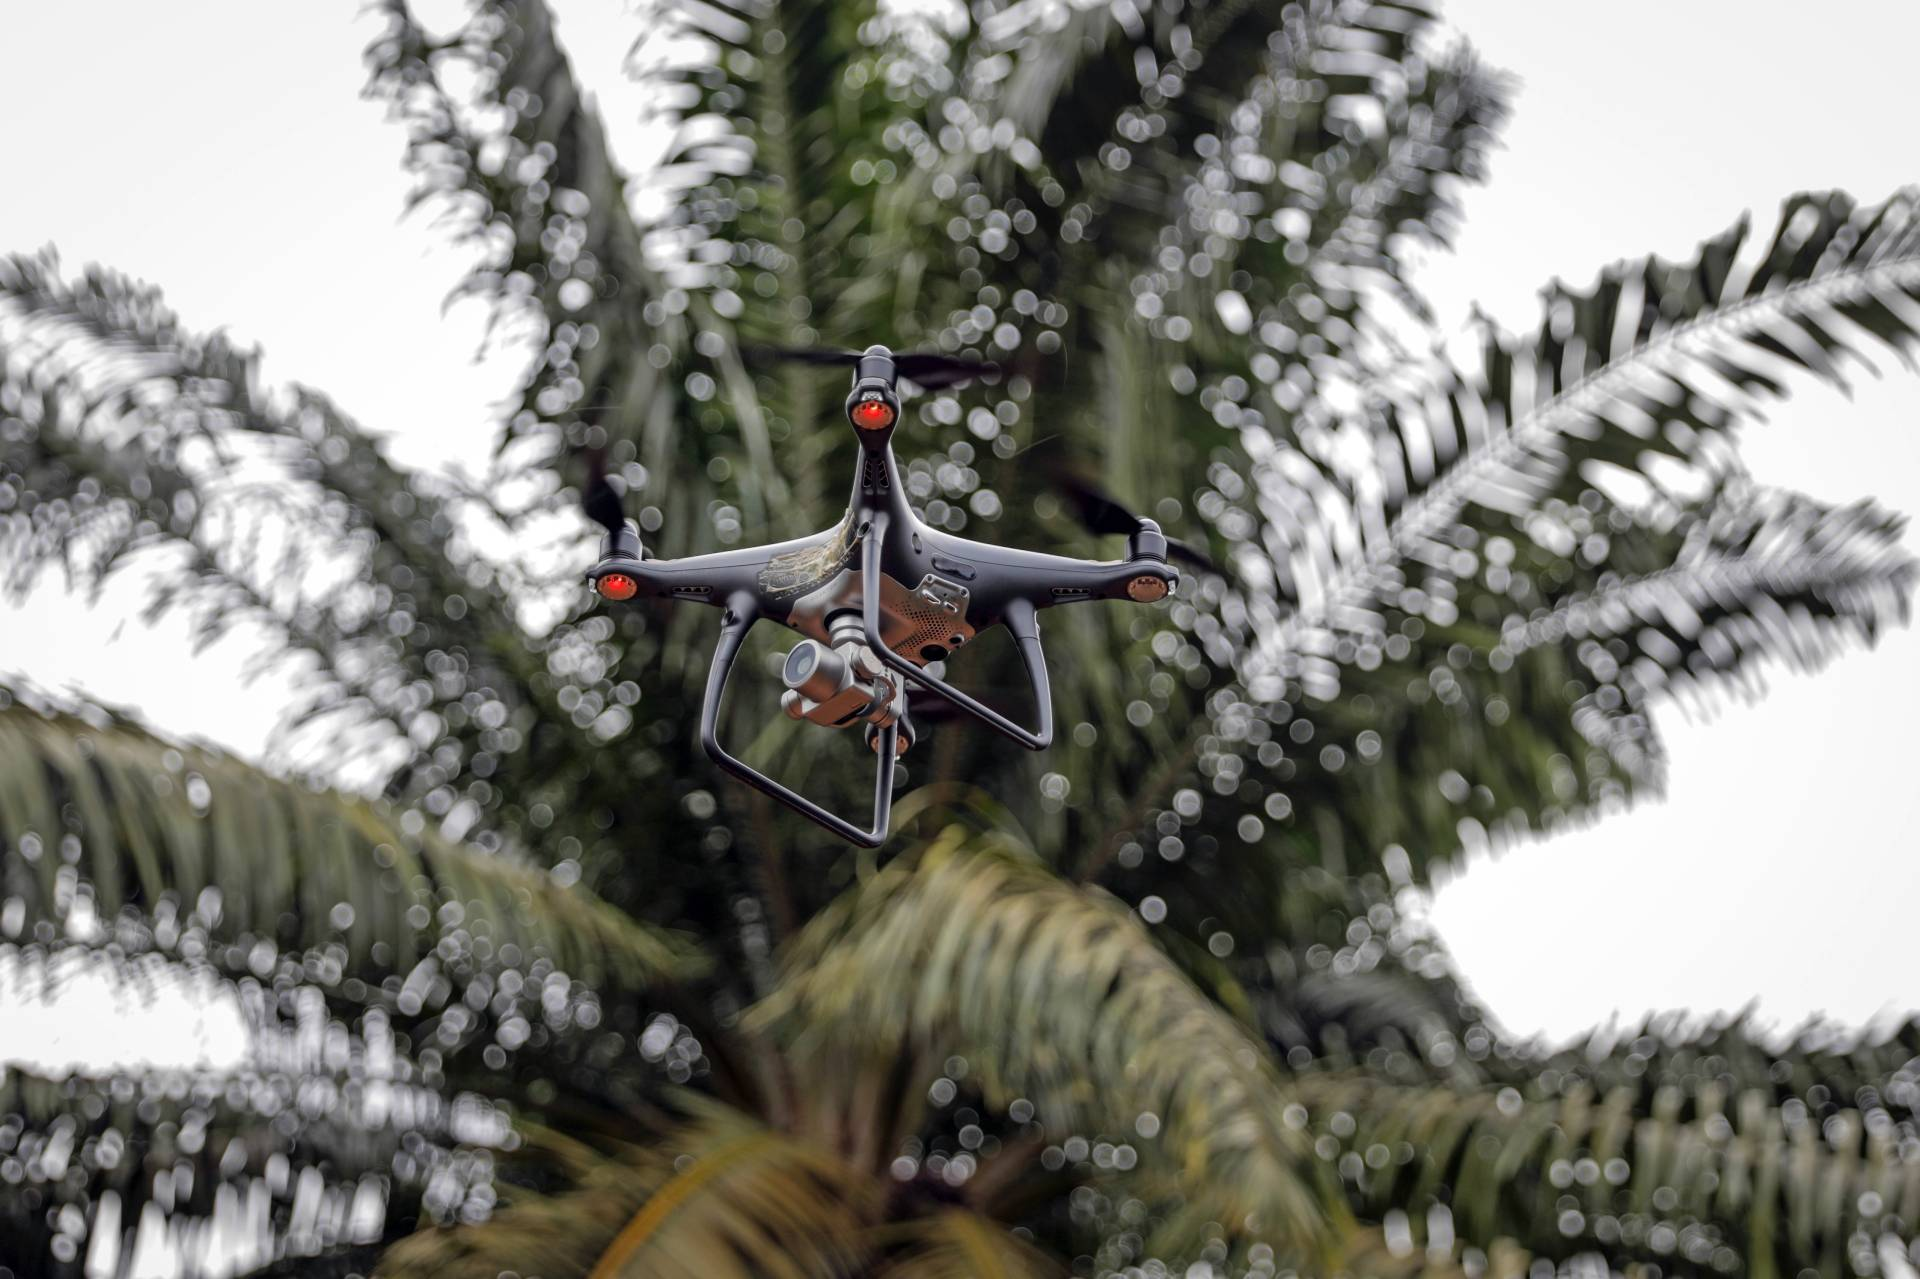 An SZ DJI Technology Co. Phantom 4 drone flies at the Genting Tanah Merah Estate. A single drone can capture images of about 2,500 hectares of oil palms a day, while a human can cover only five hectares, said Tao.